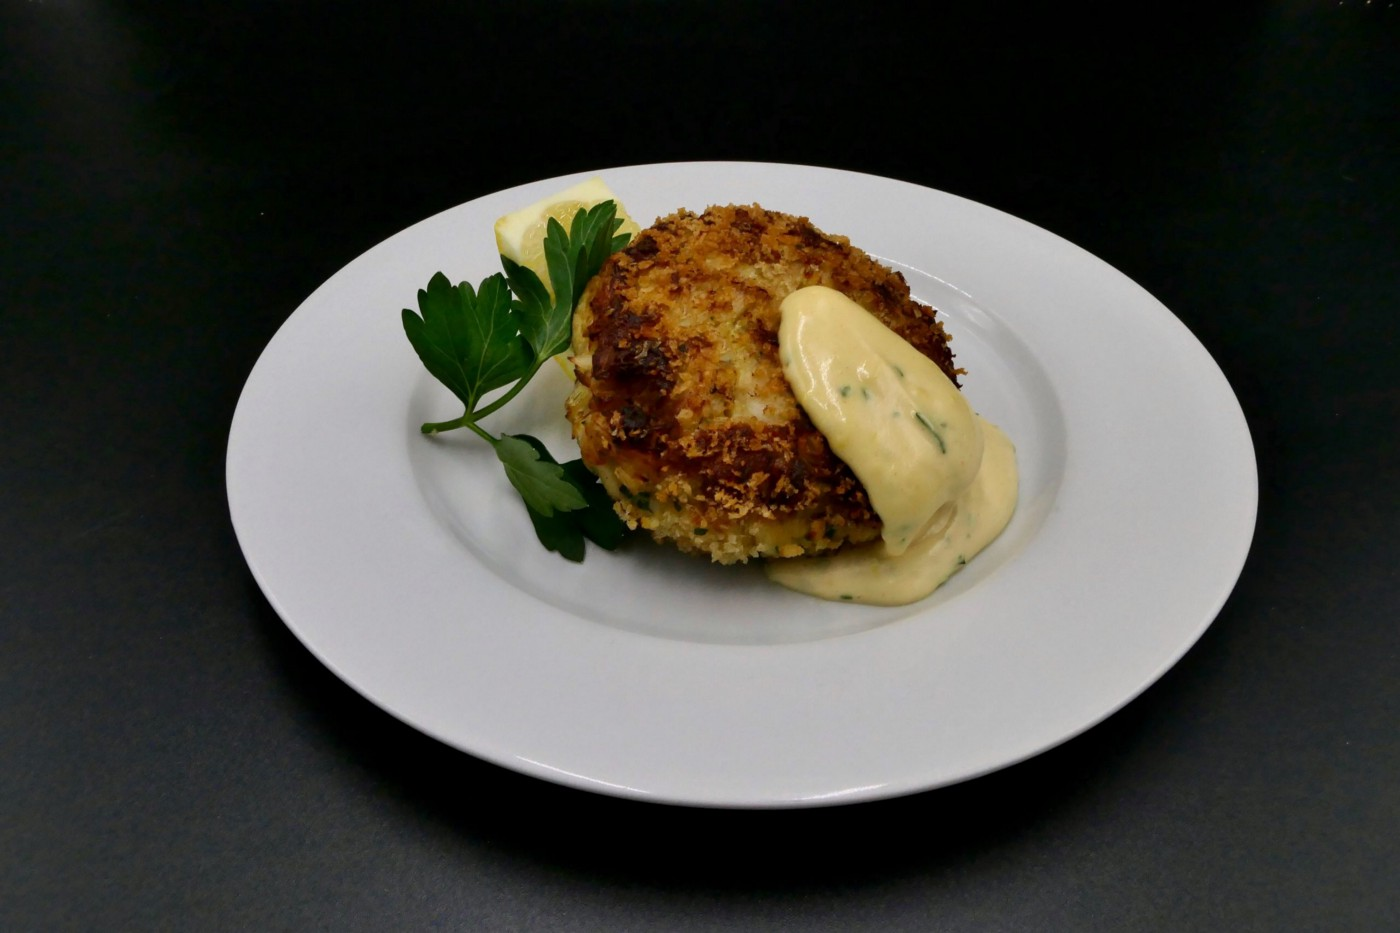 Crab cake nicely plated